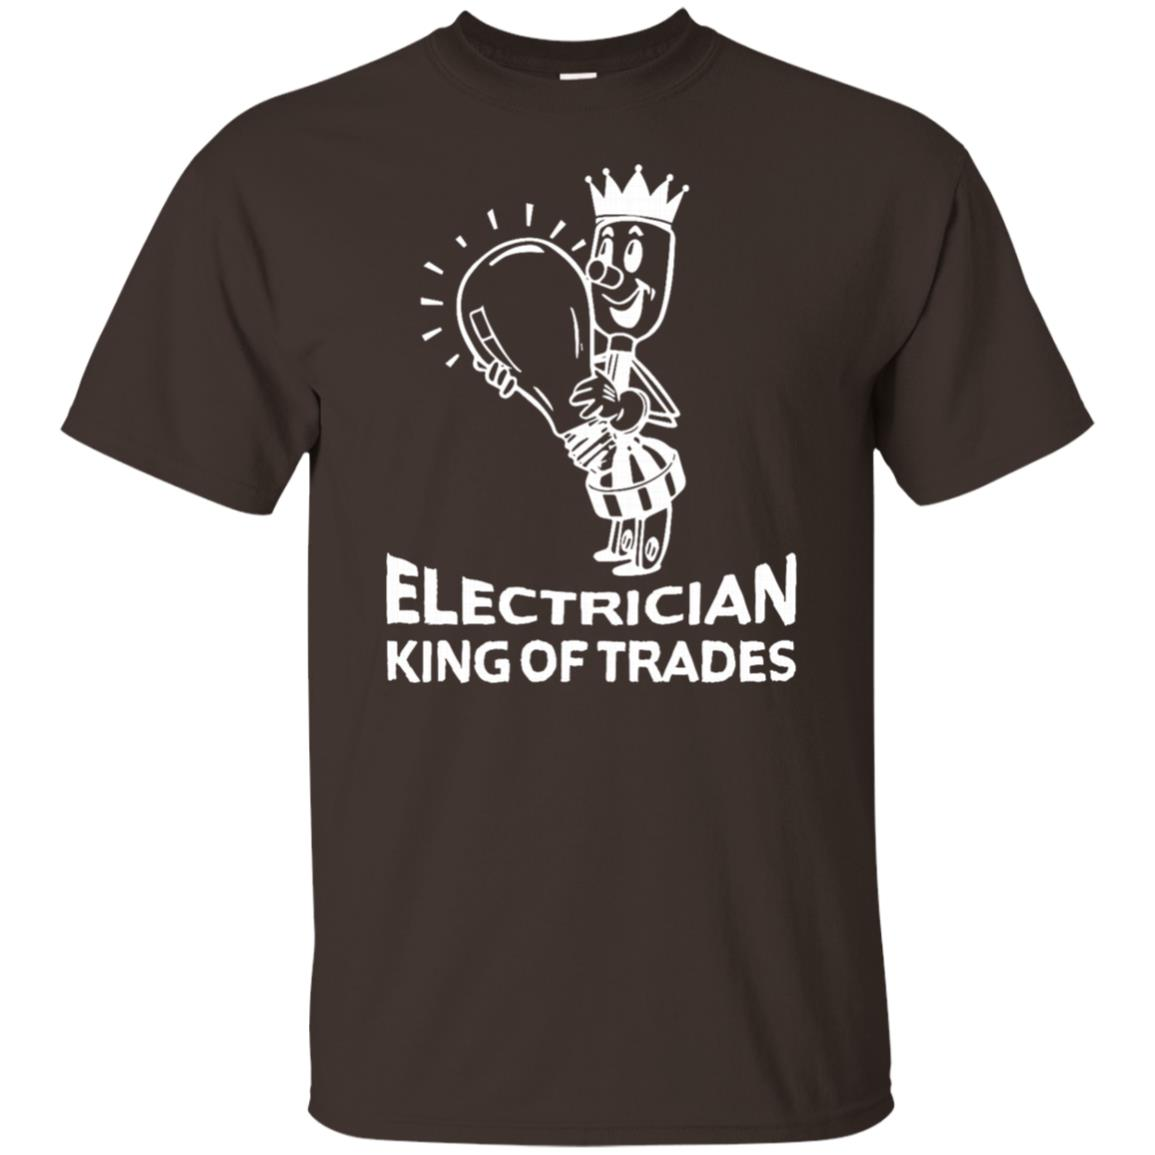 Funny Electrician King of Trades Electrics Unisex Short Sleeve